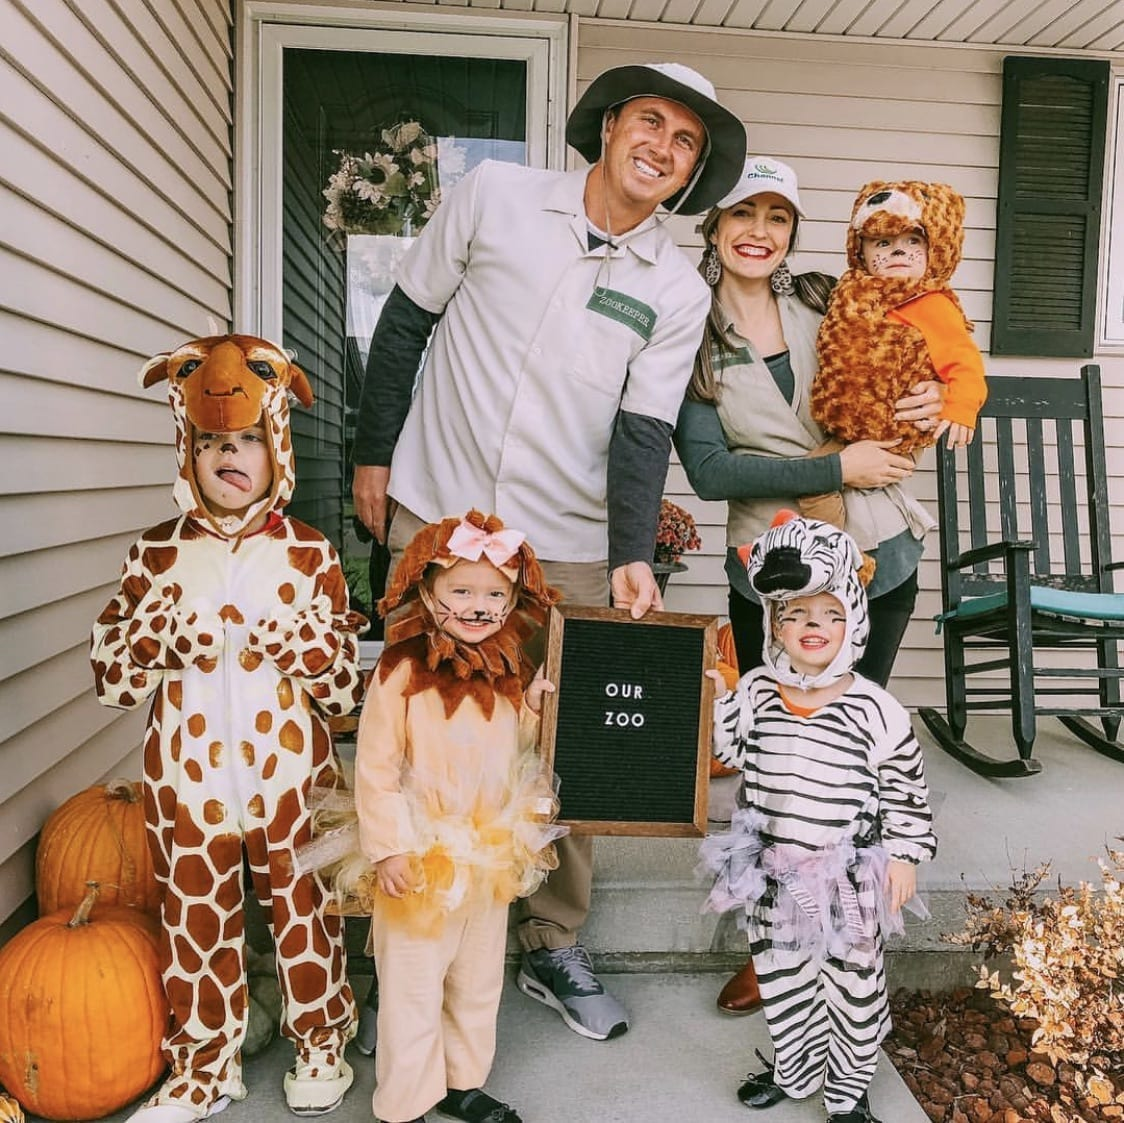 Family dressed up as zoo keepers and animals for Halloween.